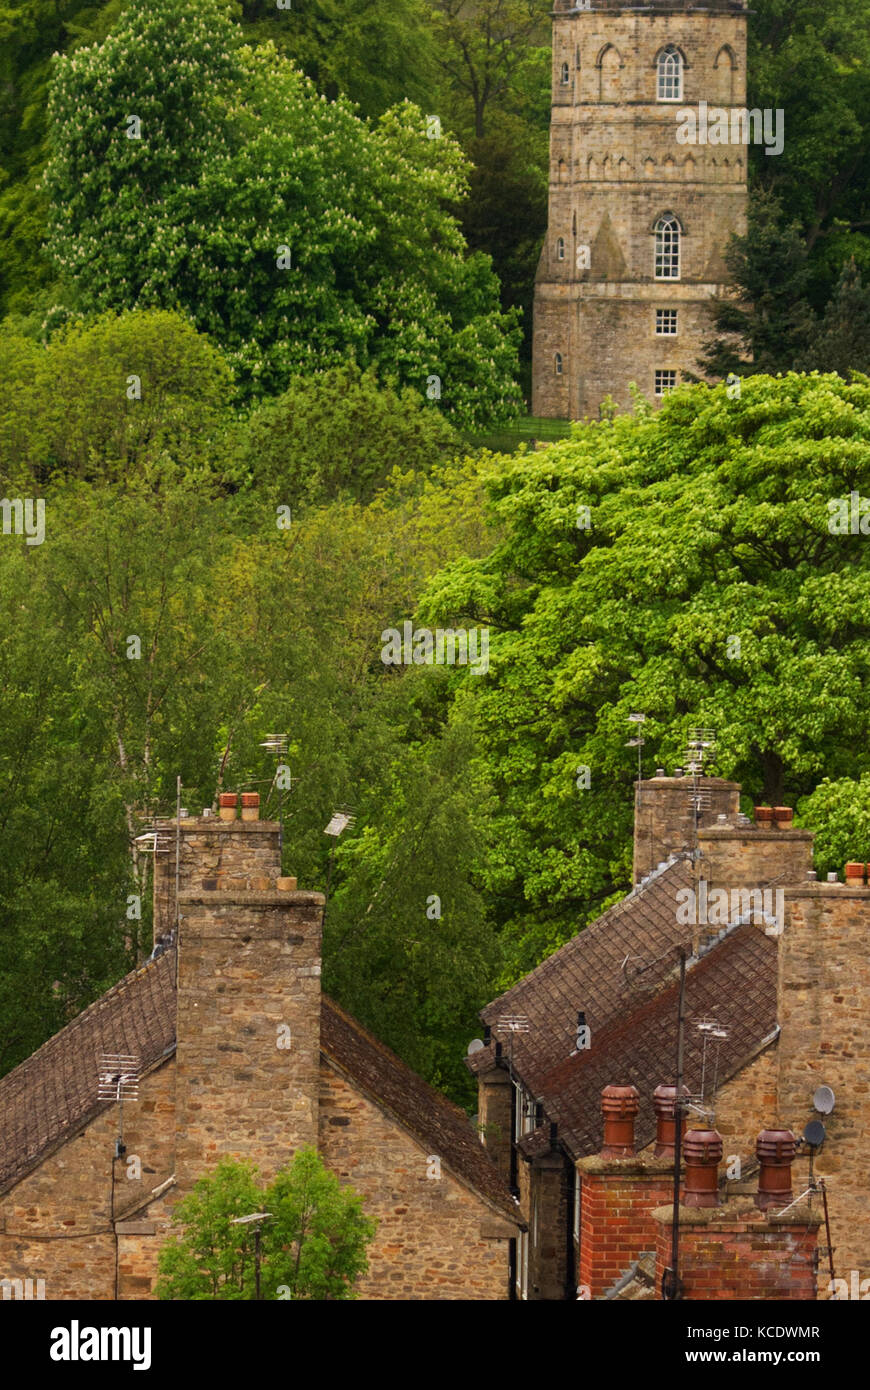 Swale Garden Stock Photos Swale Garden Stock Images Alamy